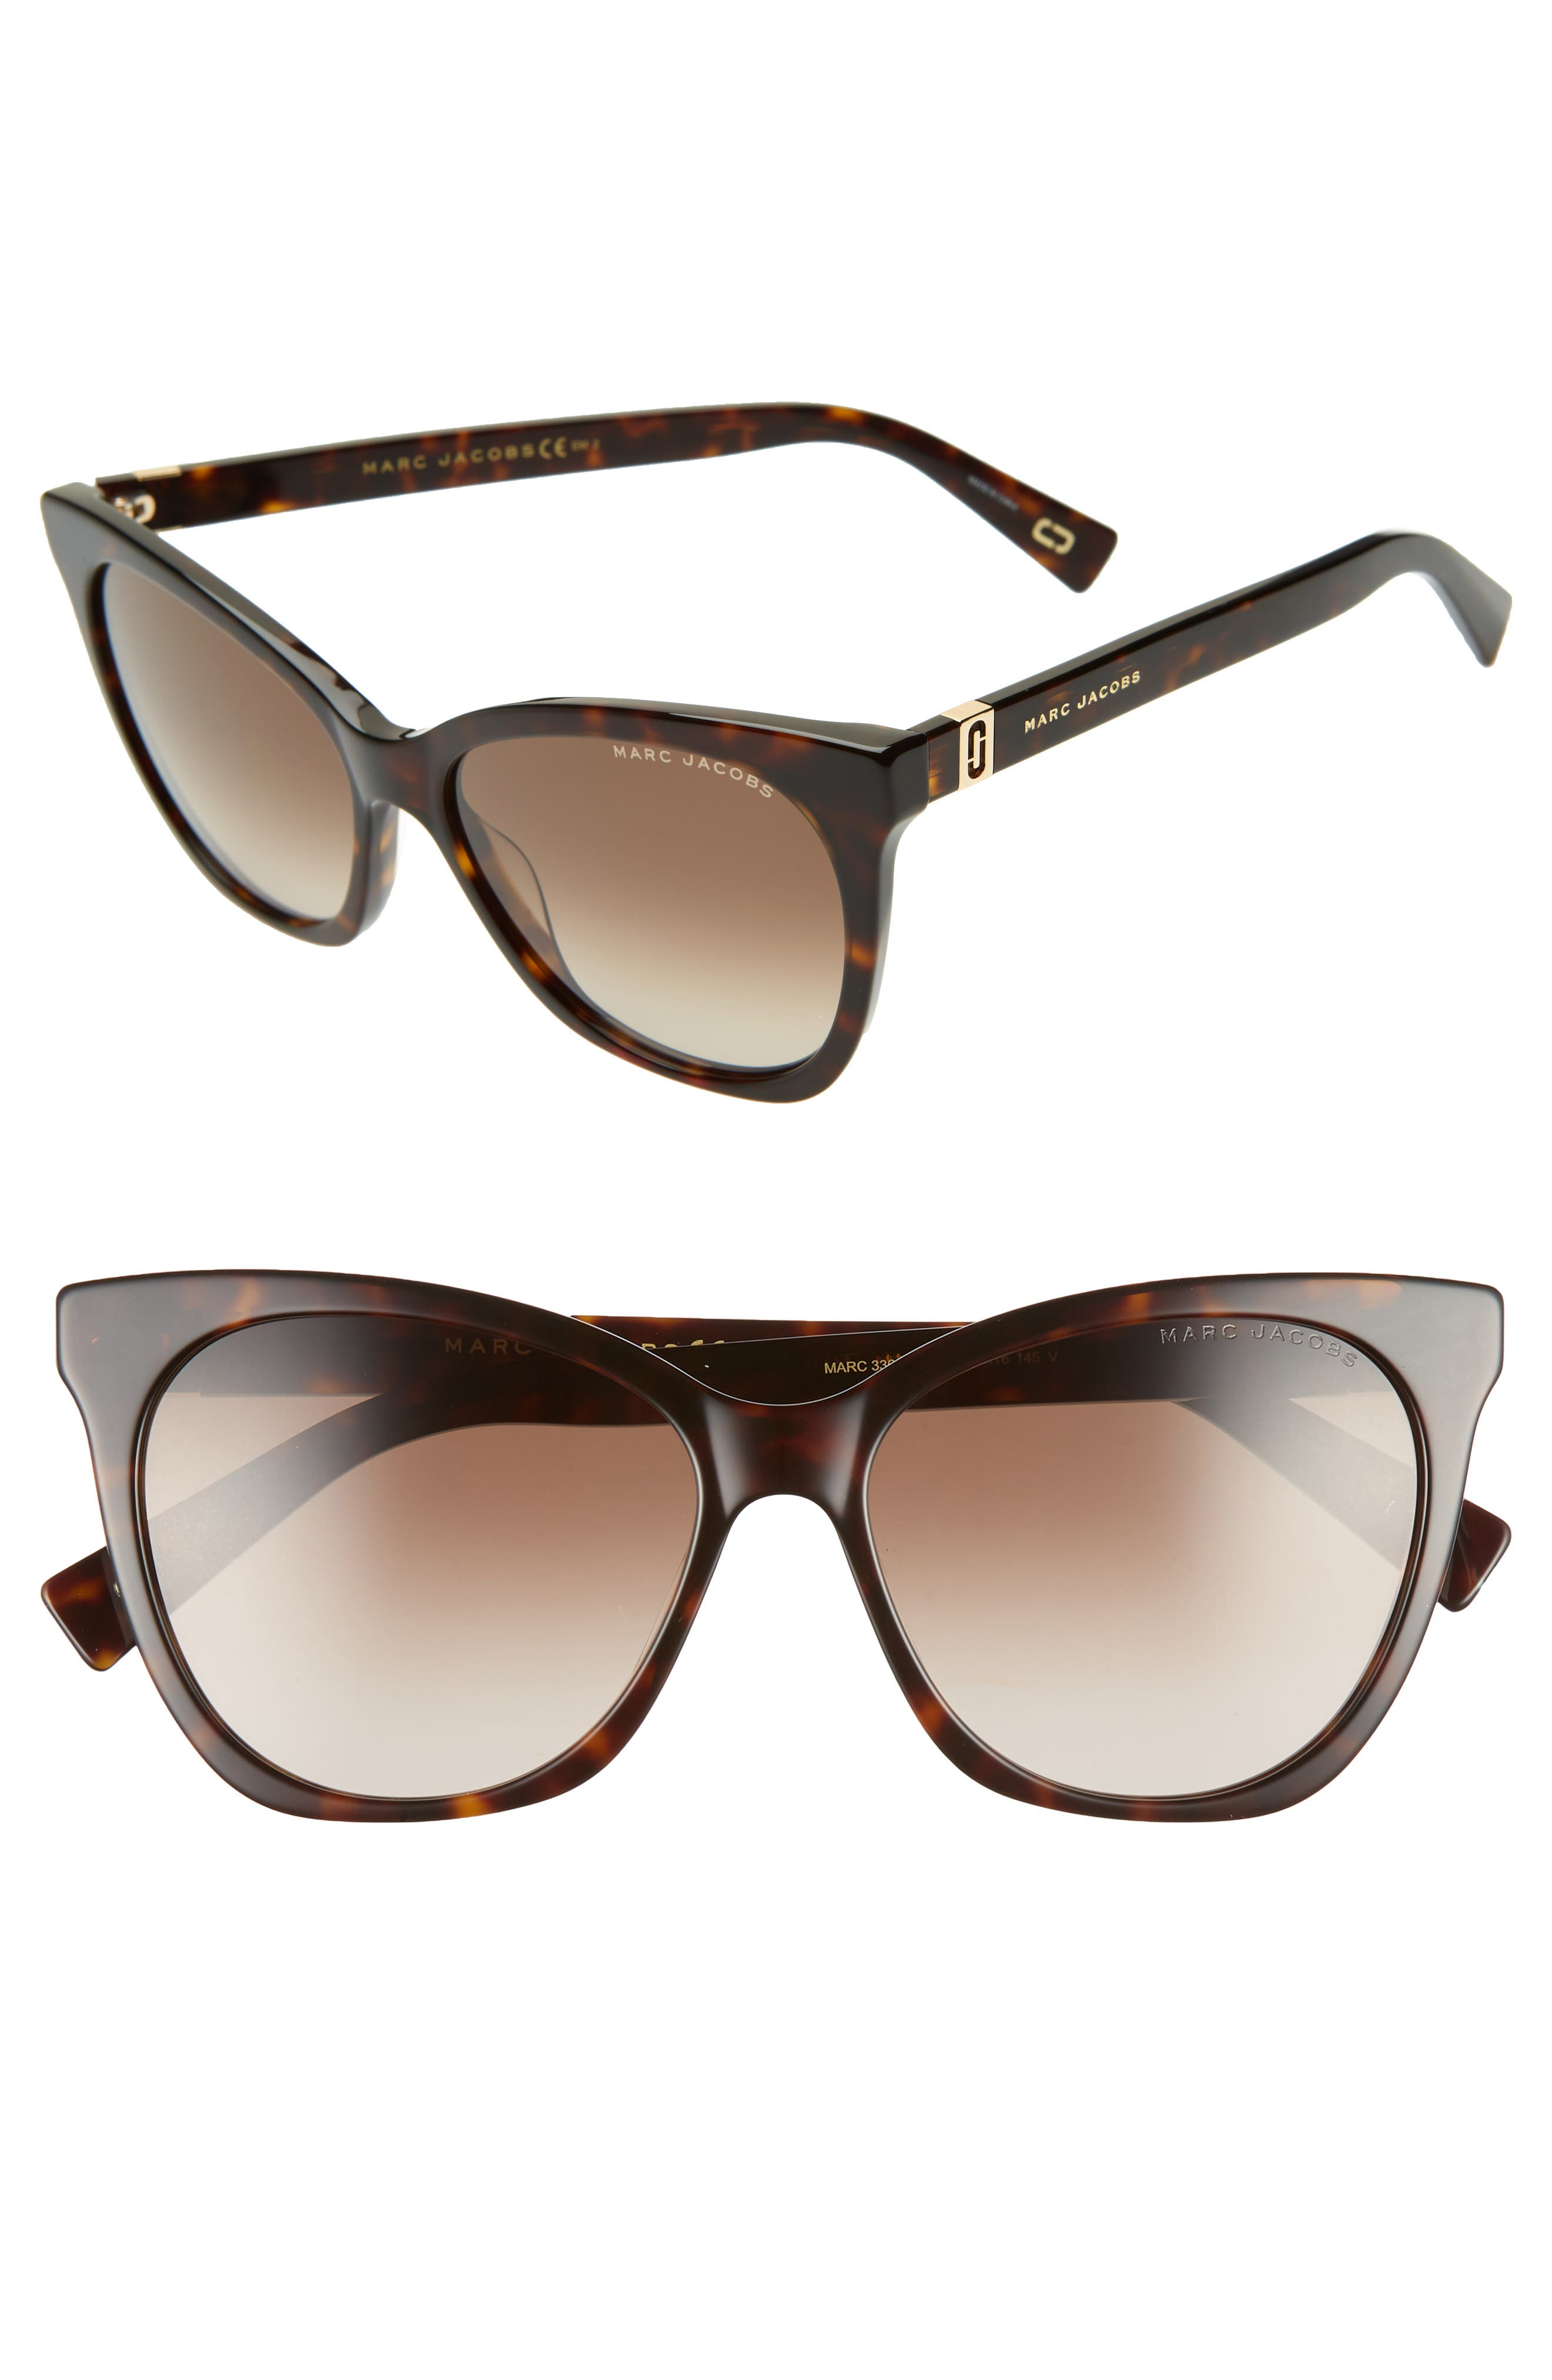 22314ddfee4 MARC JACOBS Sunglasses for Women